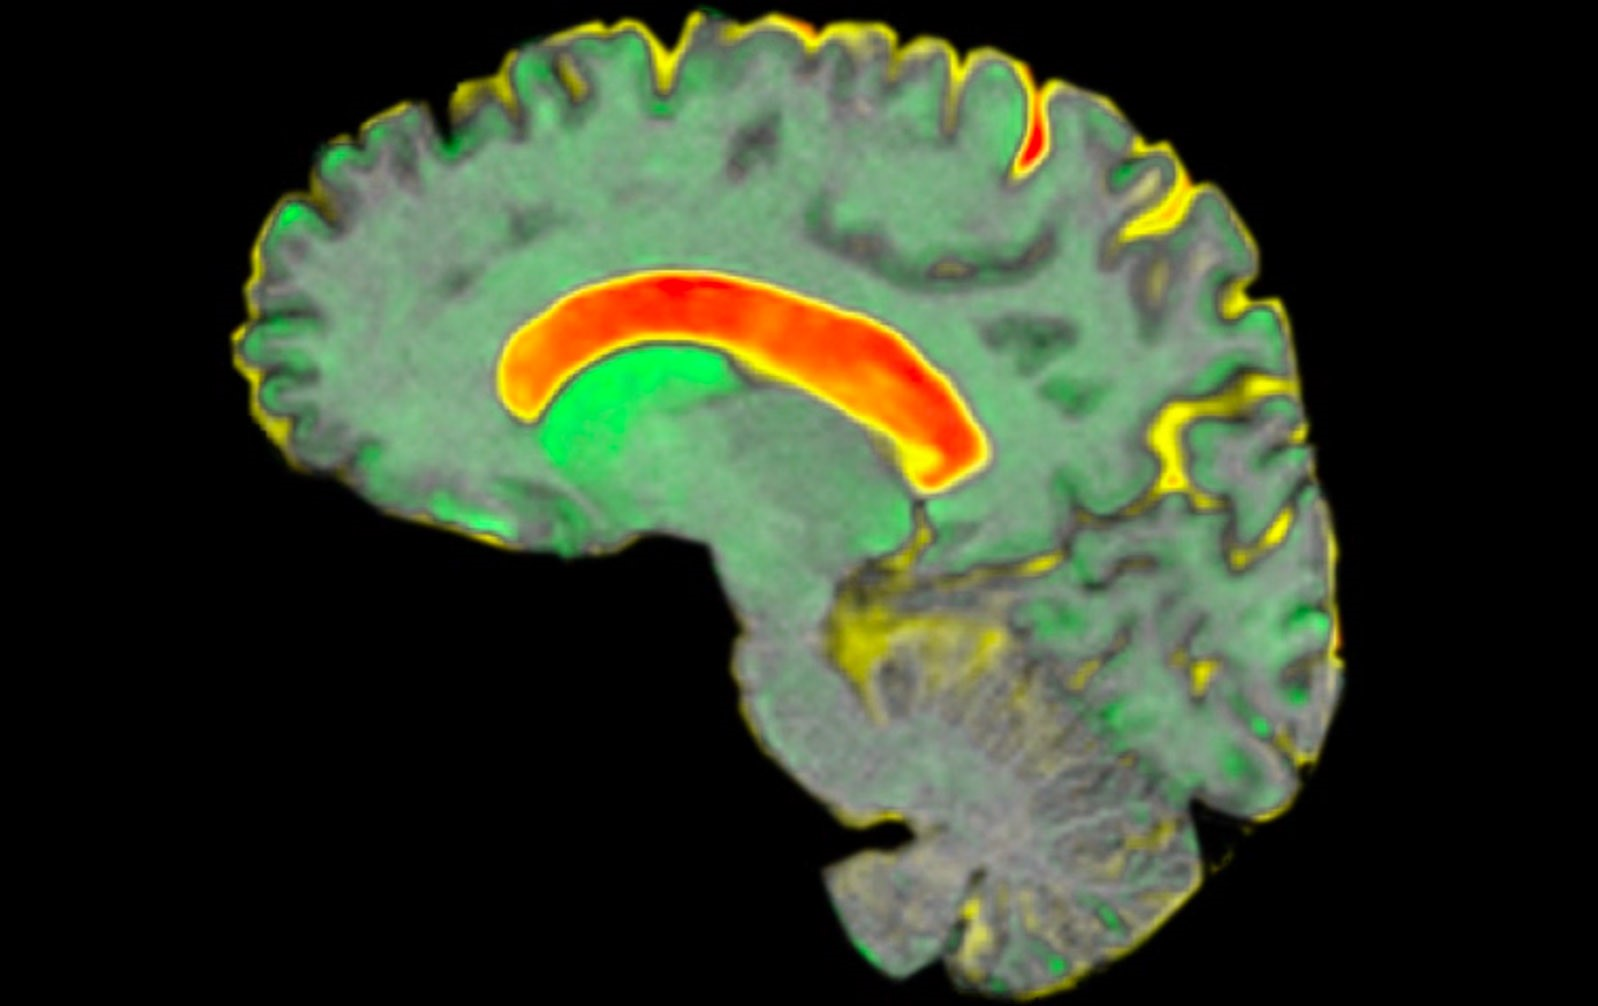 HD brain image